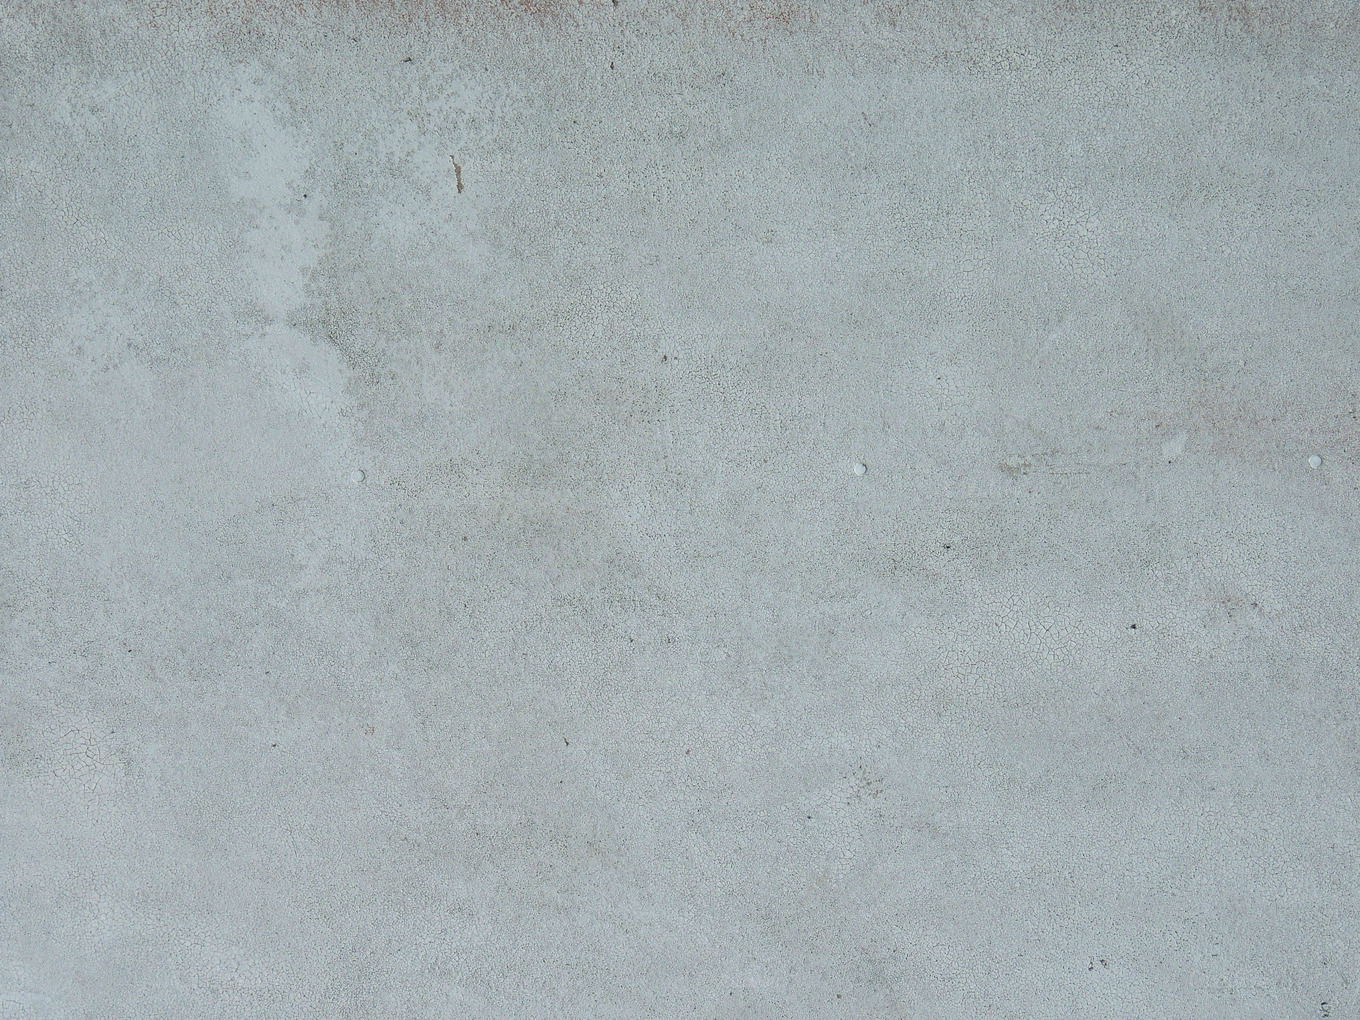 Old Cracked Paint Texture Grunge BG Abstract Photos On